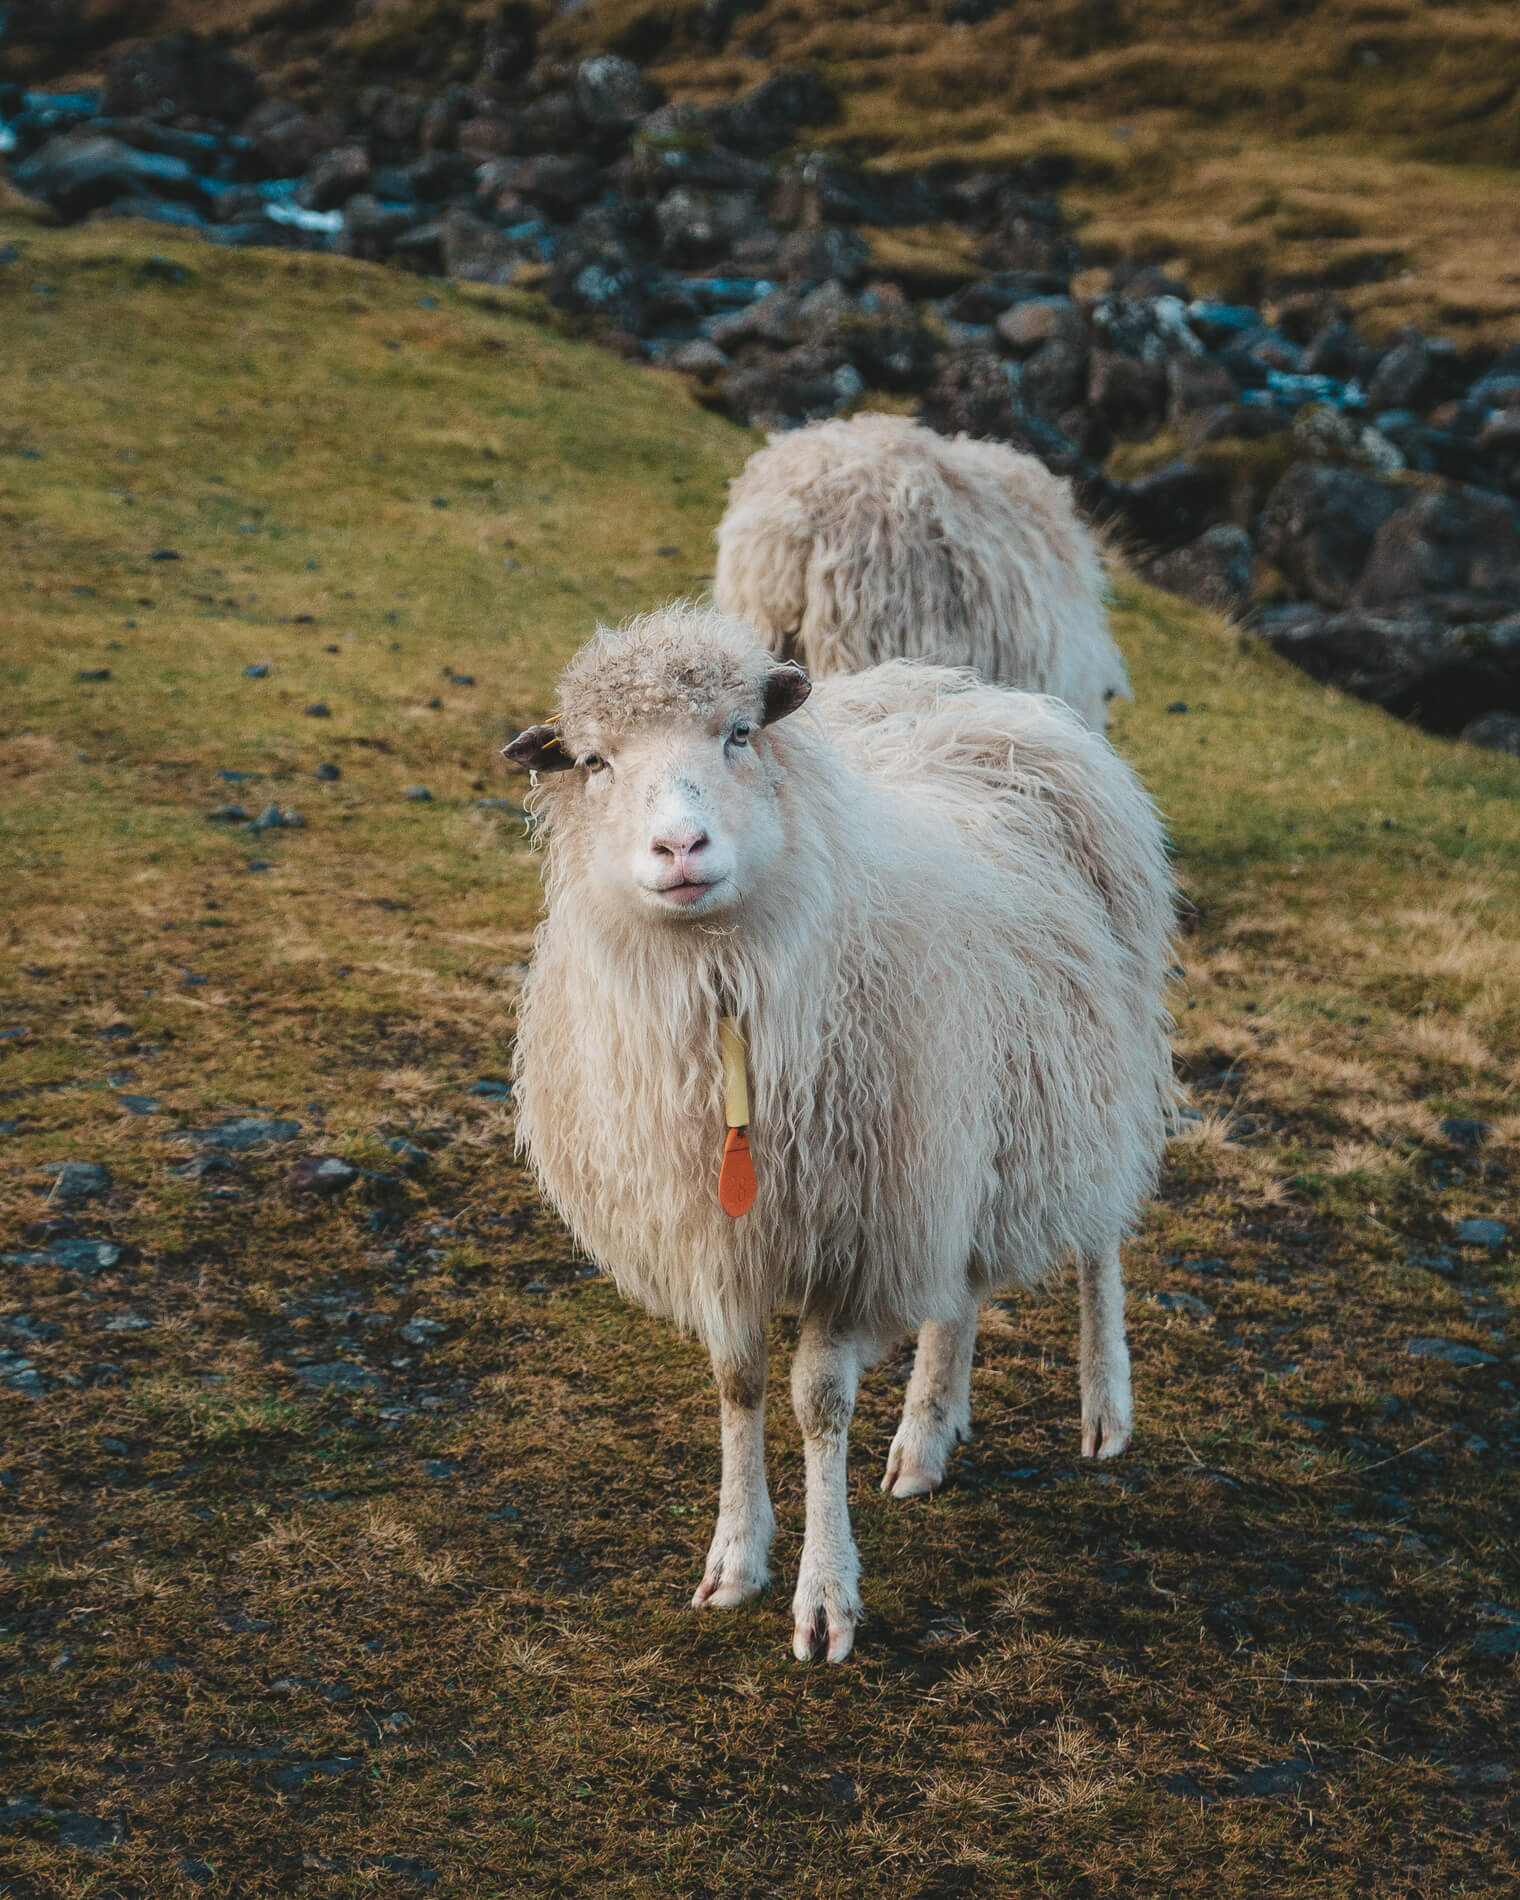 Sheep looking at camera portrait Faroe Islands, faroe island facts, visit faroe islands